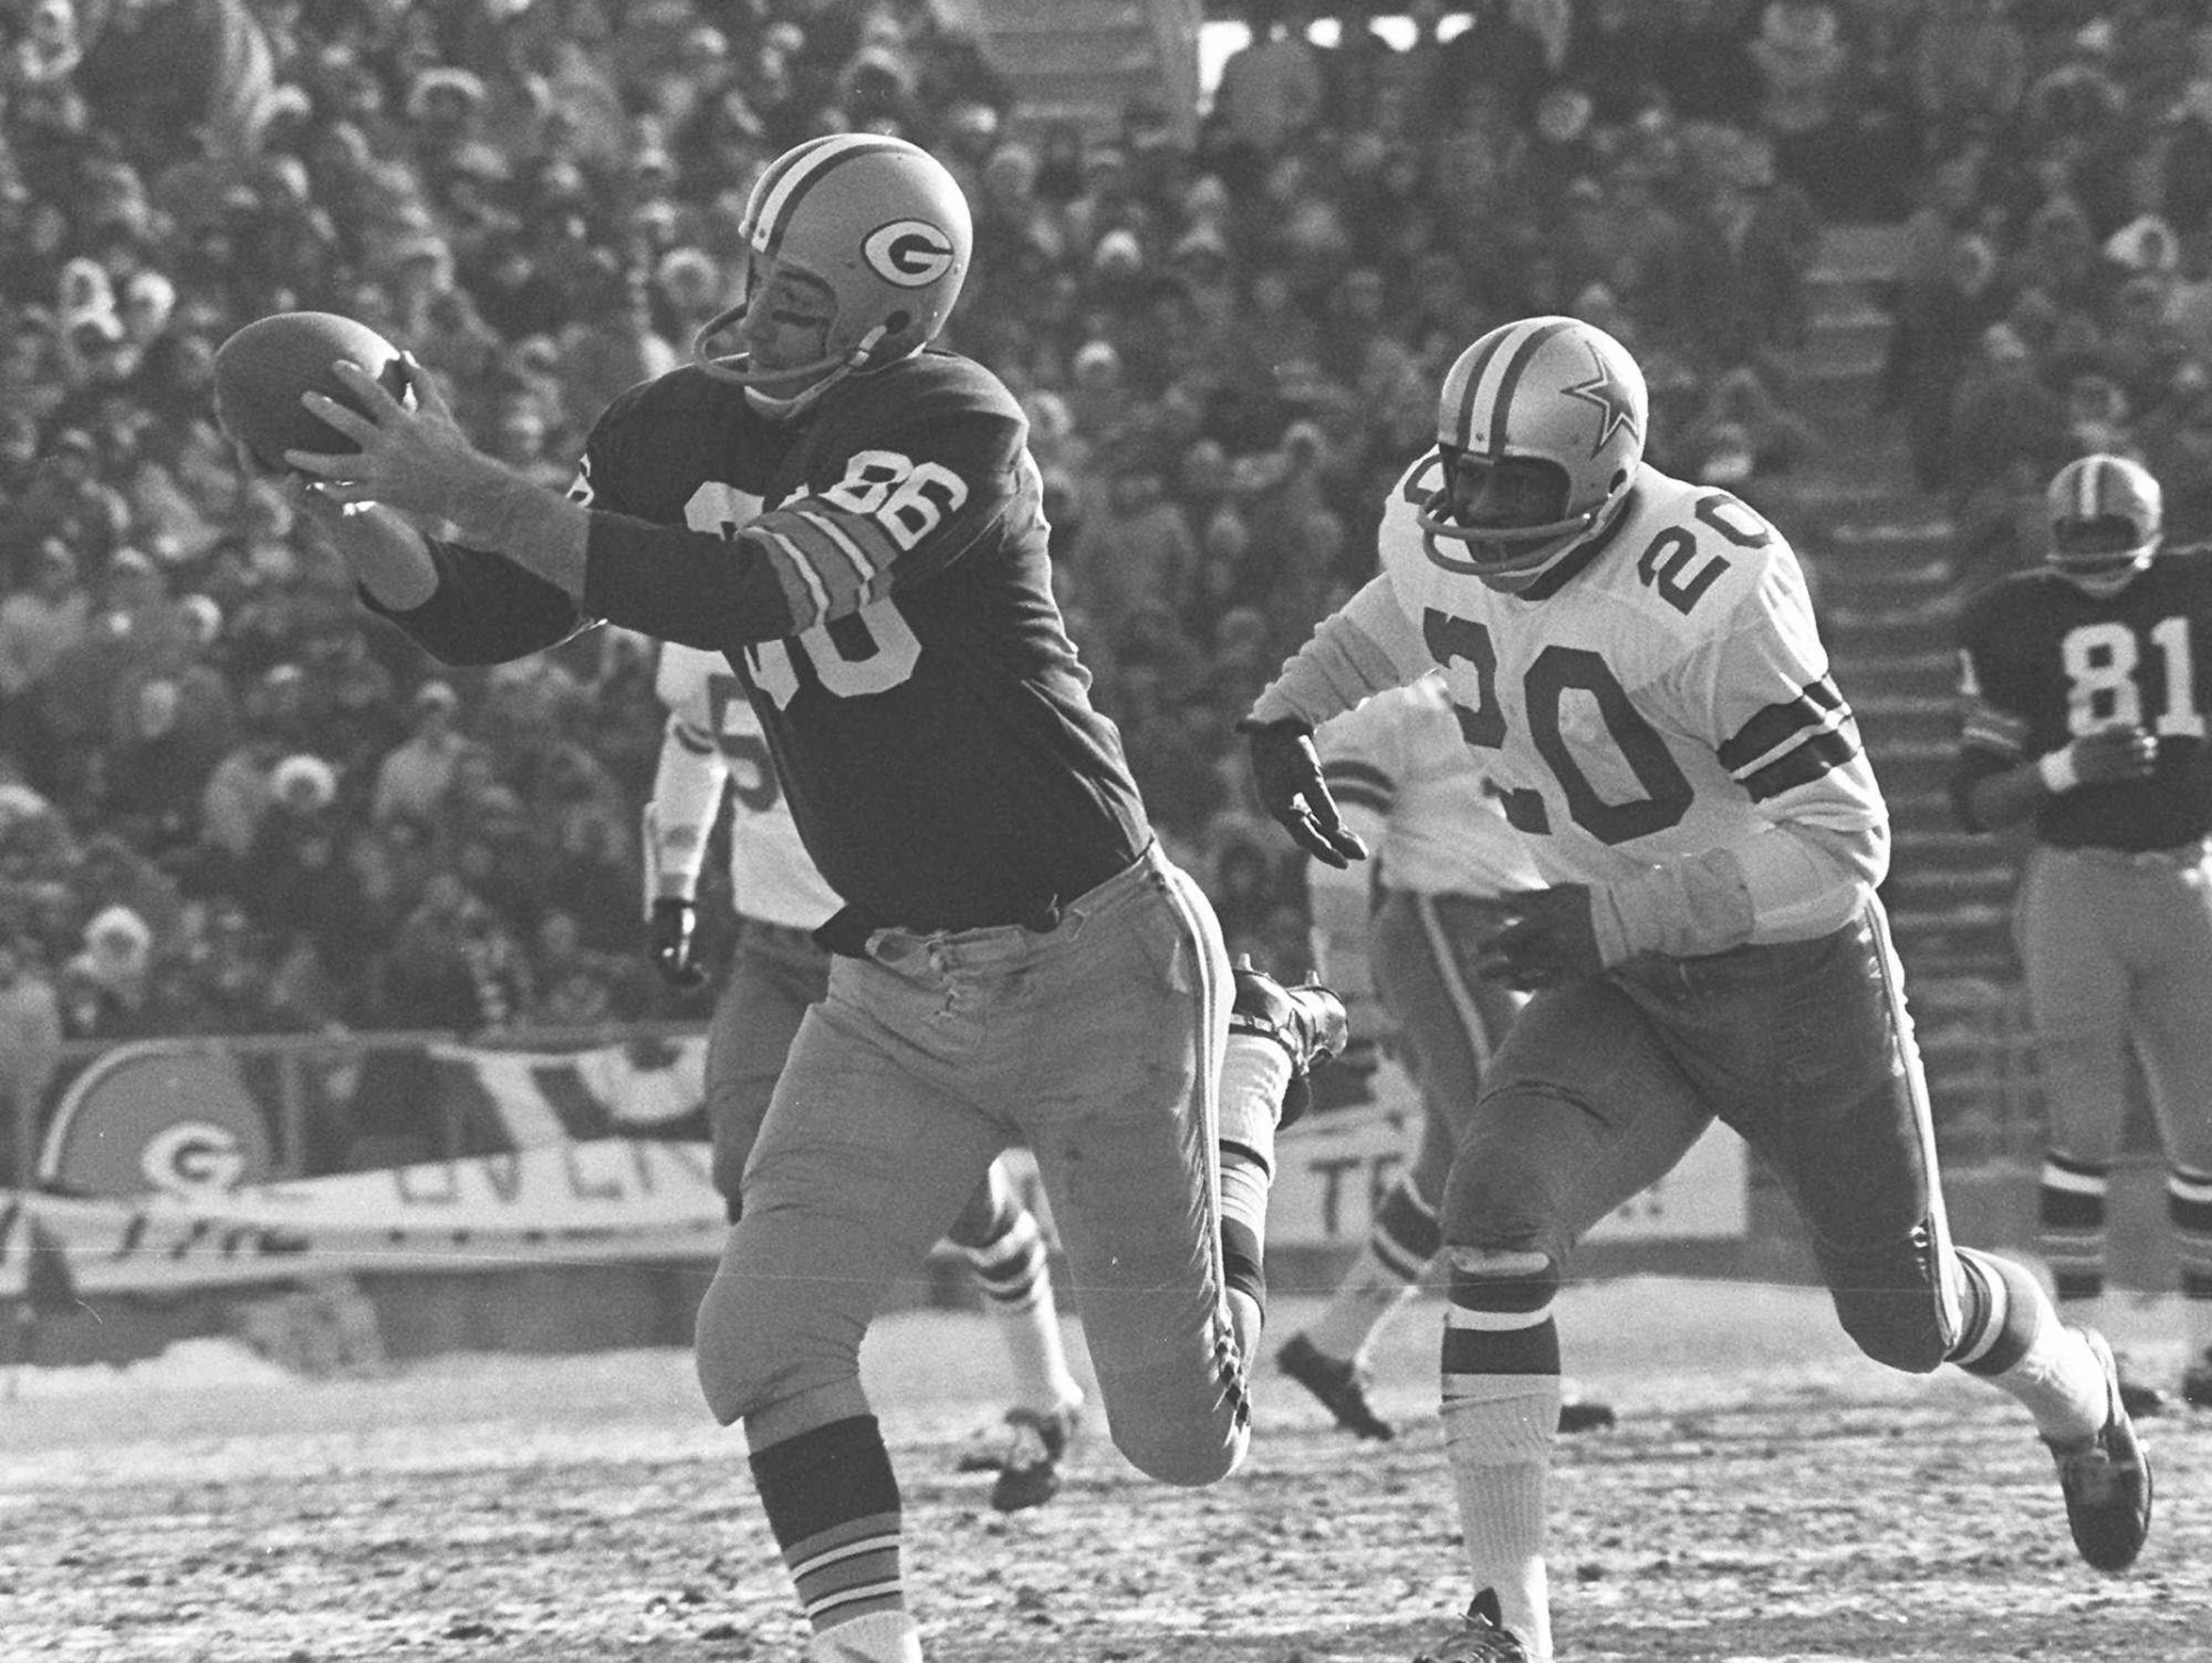 Boyd Dowler hauls in one of his two touchdown passes from Bart Starr that staked the Green Bay Packers to an early 14-0 lead against the Dallas Cowboys in the 1967 NFL Championship Game on Dec. 31, 1967 at Lambeau Field.